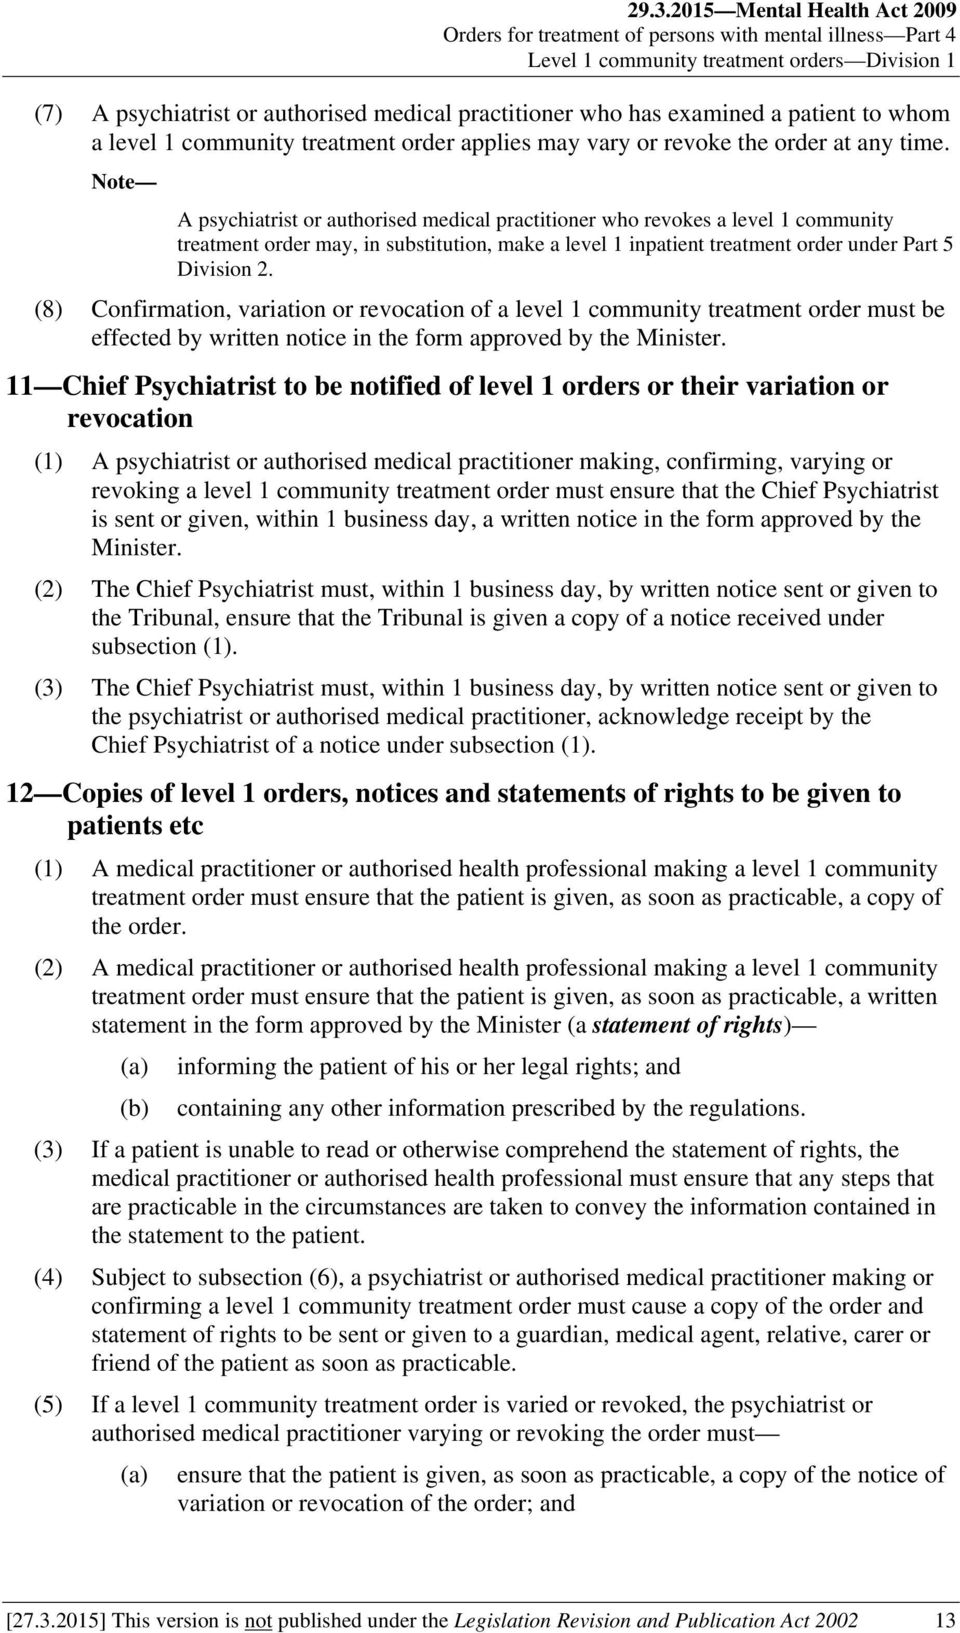 Note A psychiatrist or authorised medical practitioner who revokes a level 1 community treatment order may, in substitution, make a level 1 inpatient treatment order under Part 5 Division 2.